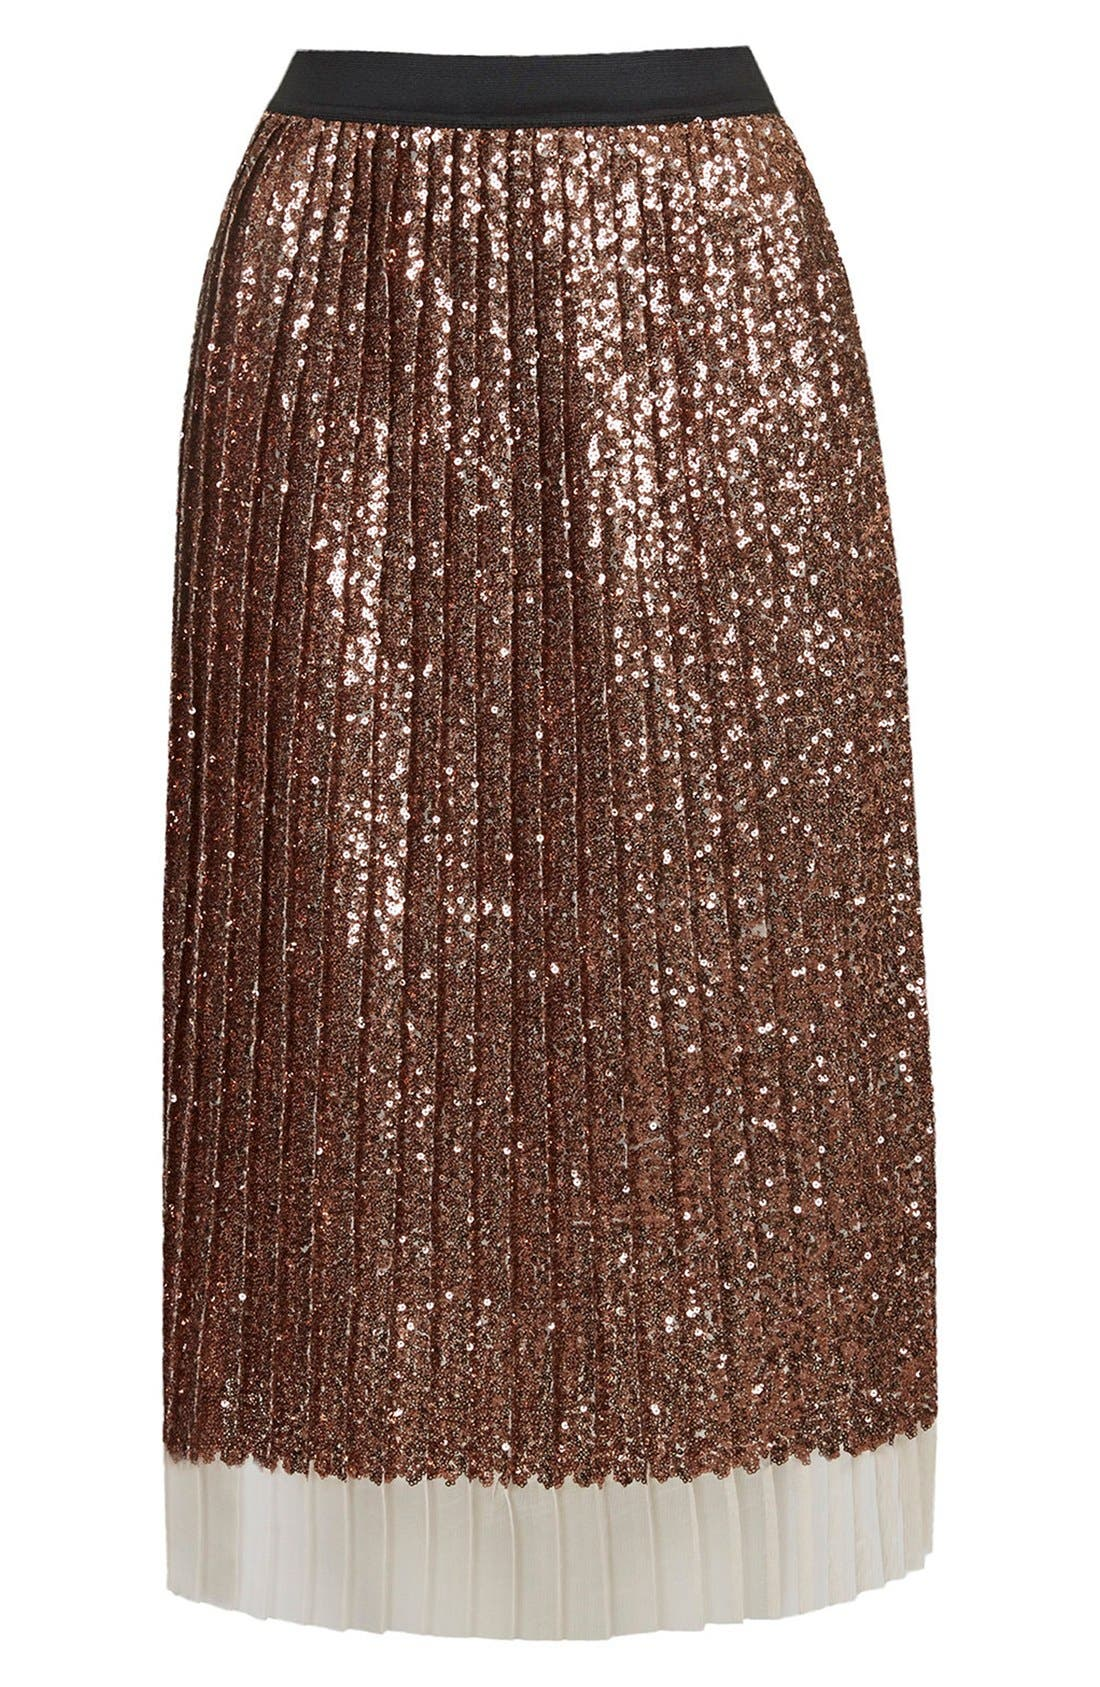 Sequin Pleated Midi Skirt,                             Alternate thumbnail 3, color,                             220